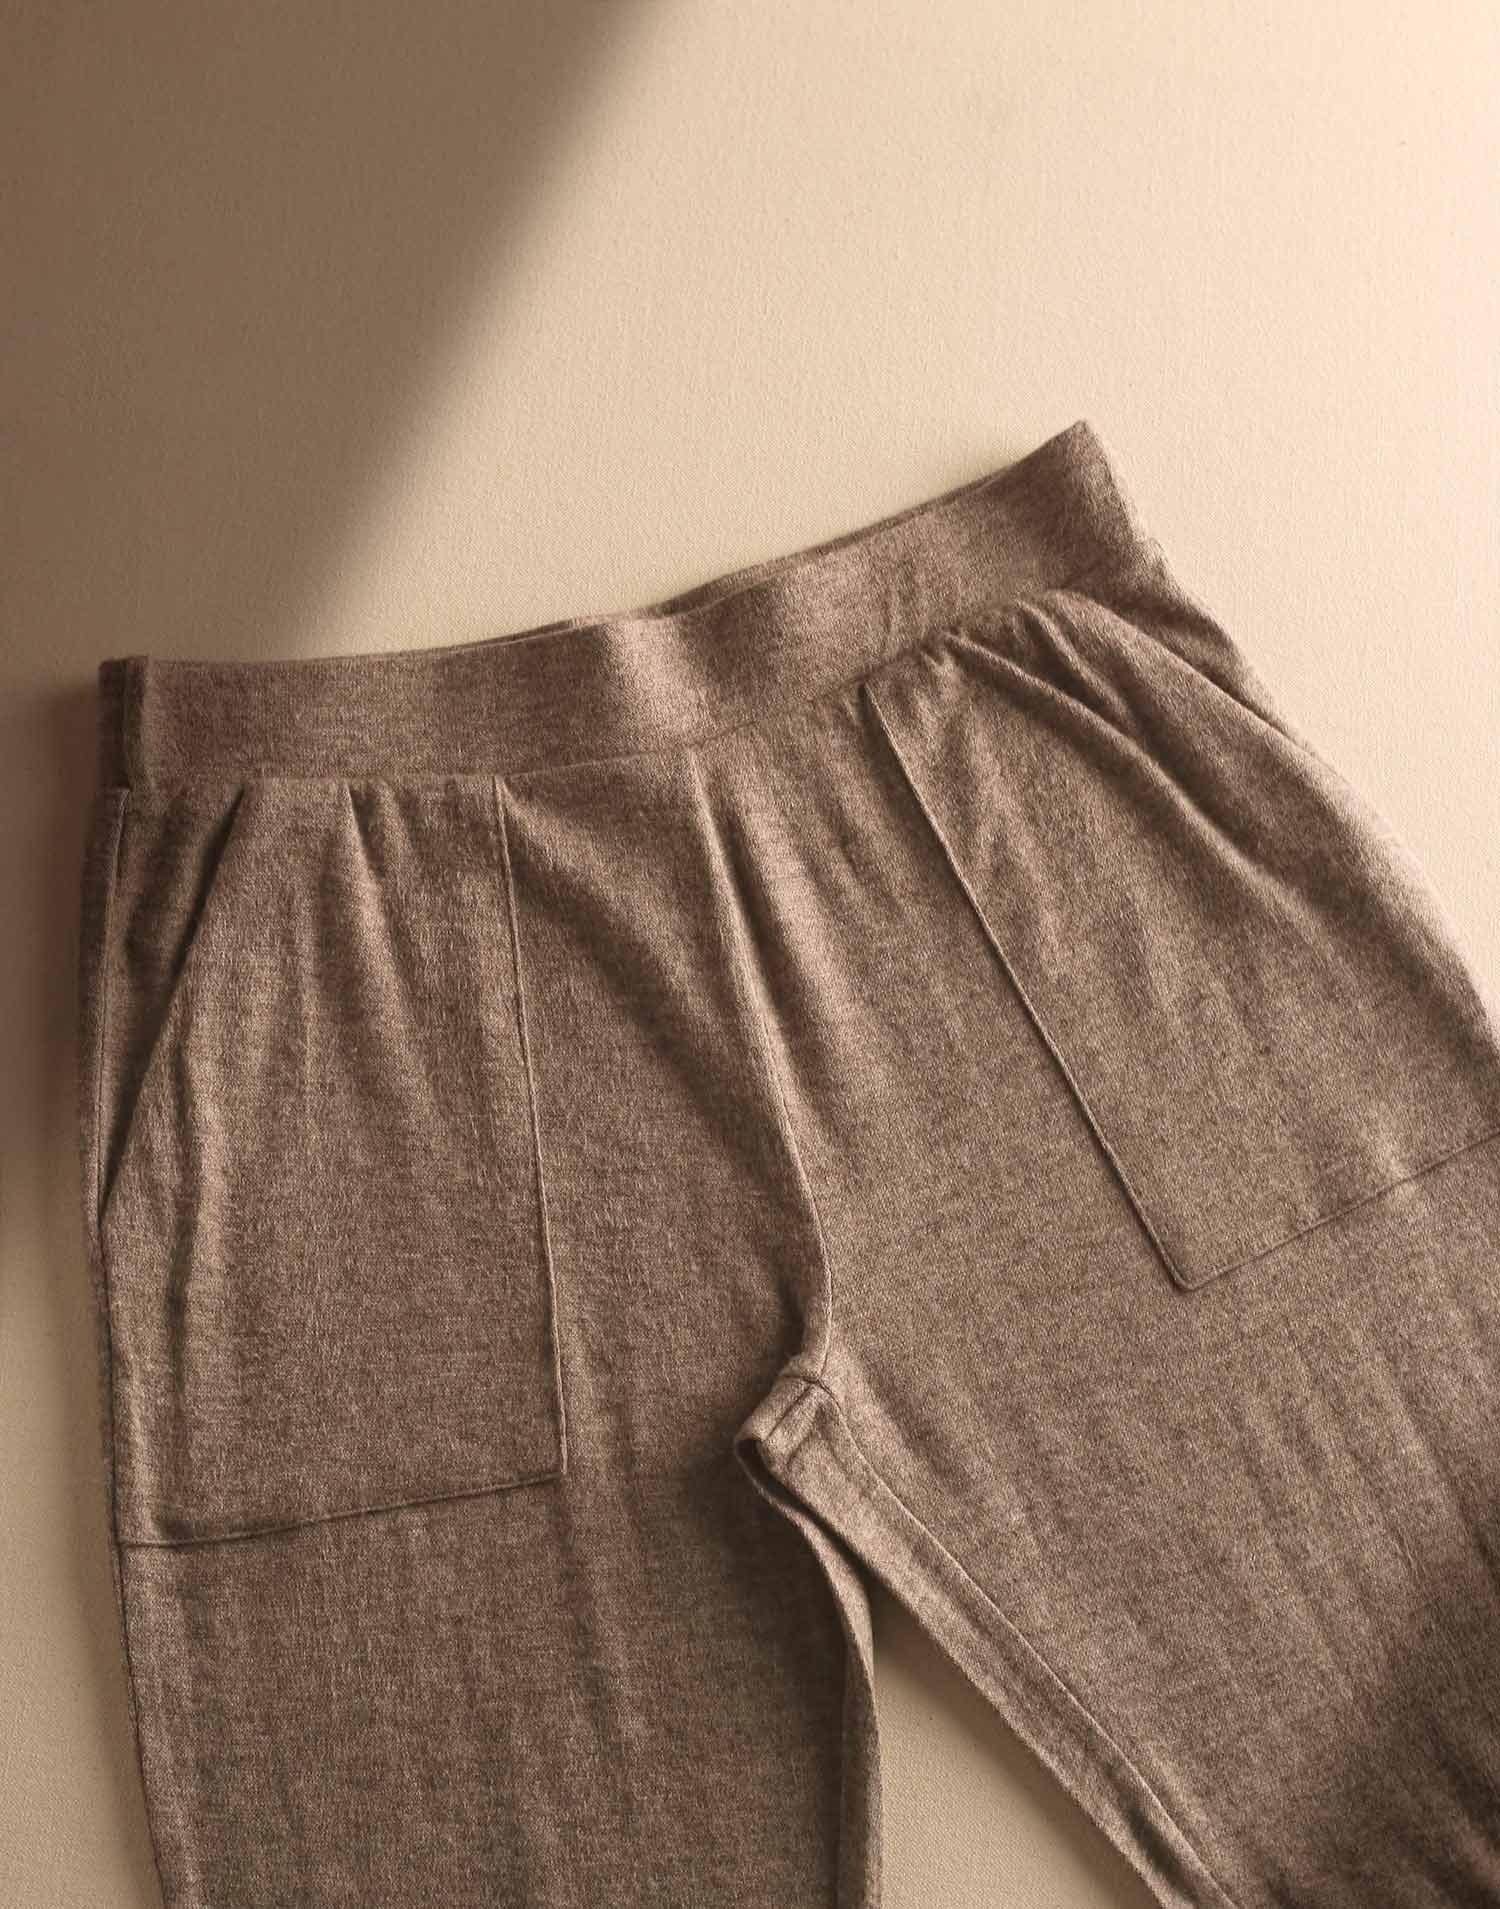 Unisex soft pants with pockets